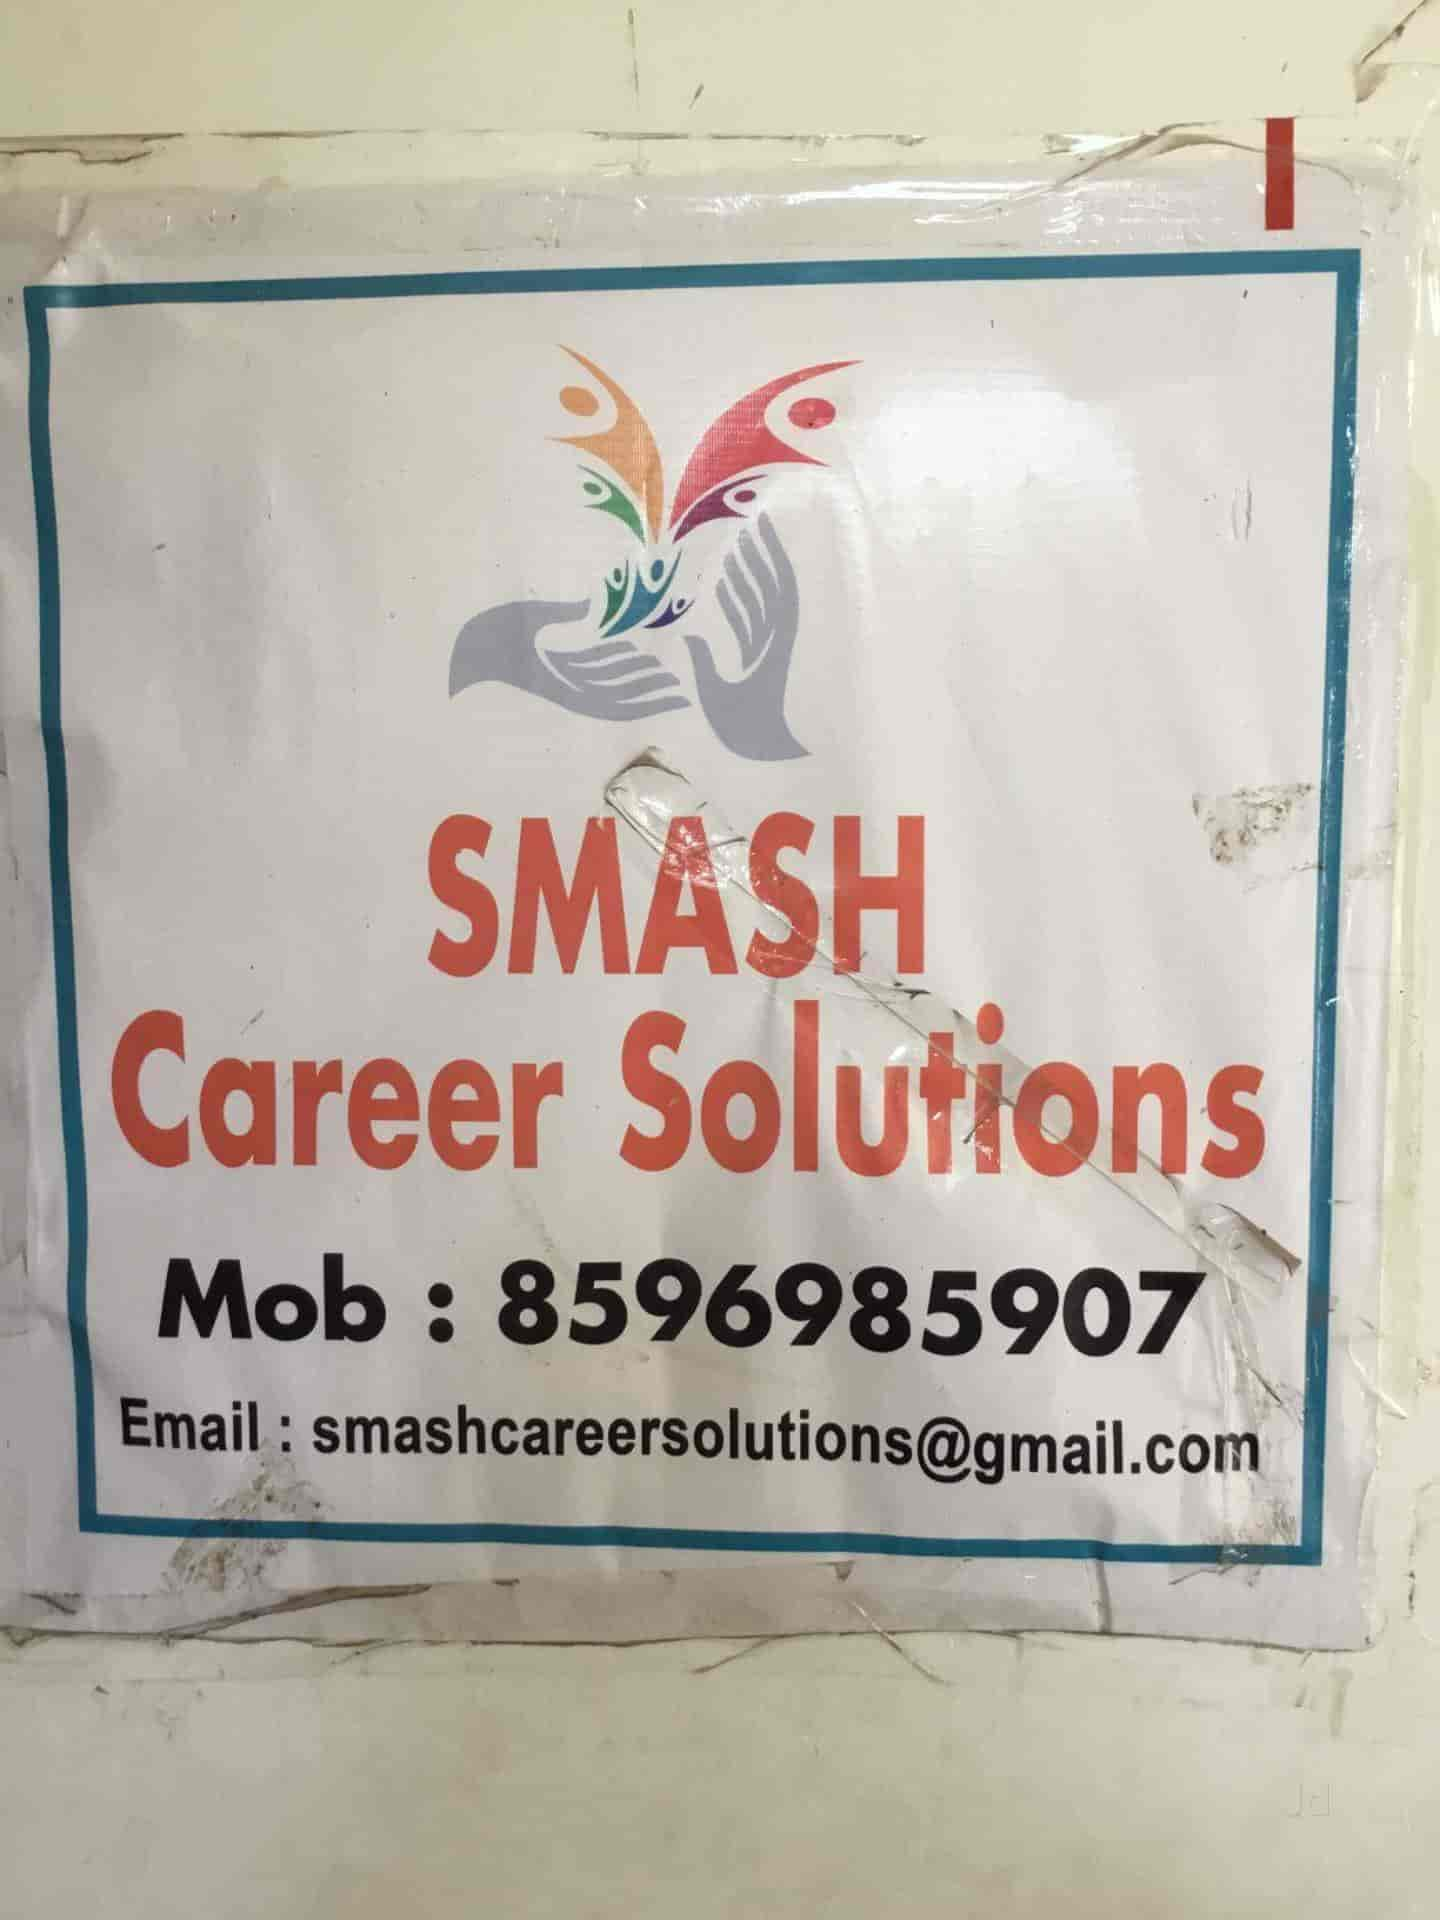 Yes Bank Home Loan Career Smash Career Solutions Link Road Placement Services Candidate